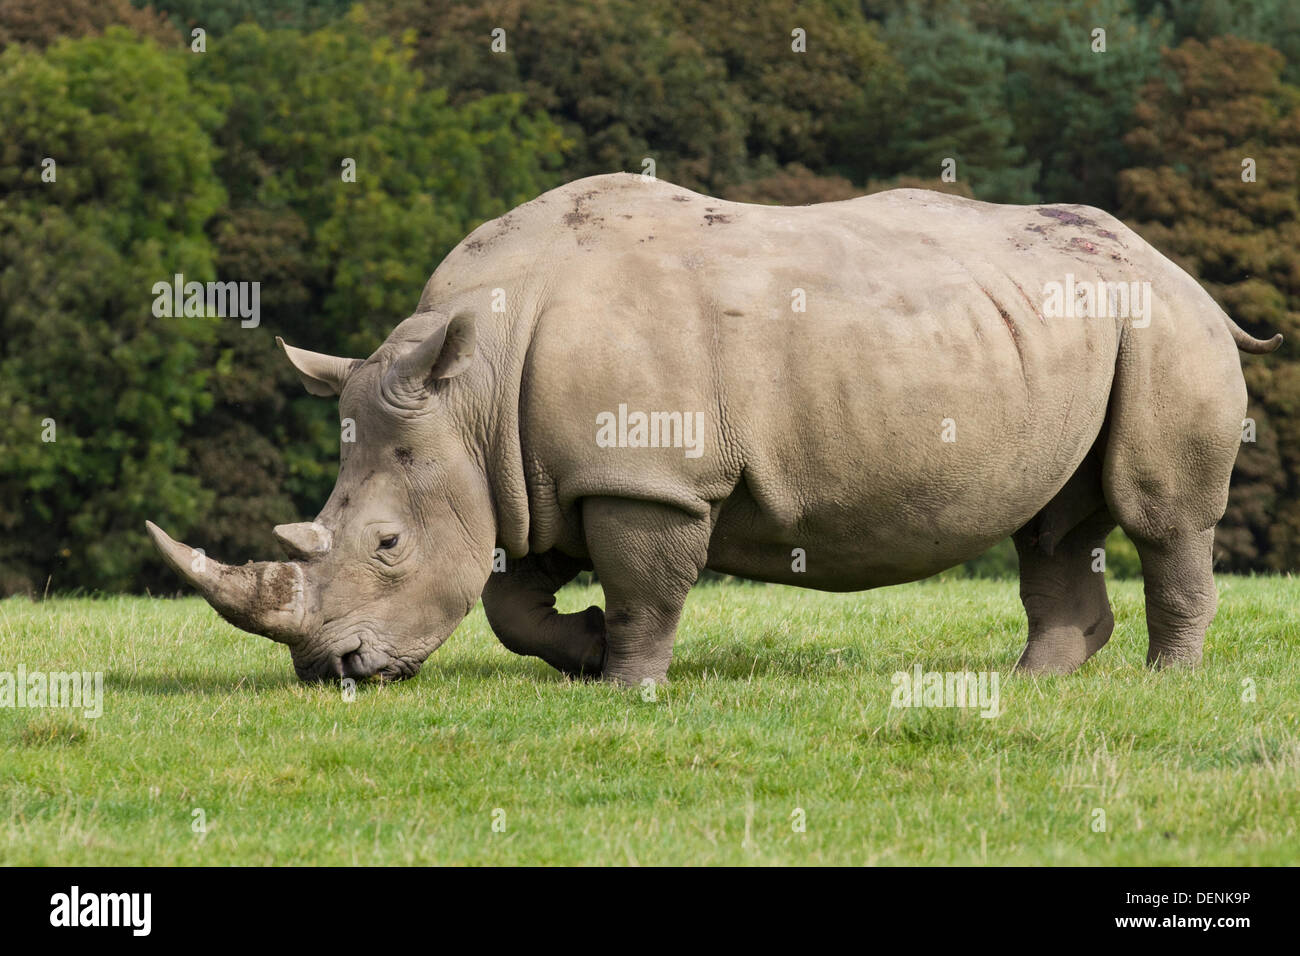 Knowsley Safari Park World Rhino Day.  22nd September, 2013.  Female Rhino at the The 'Save the Rhino'  event at Stock Photo